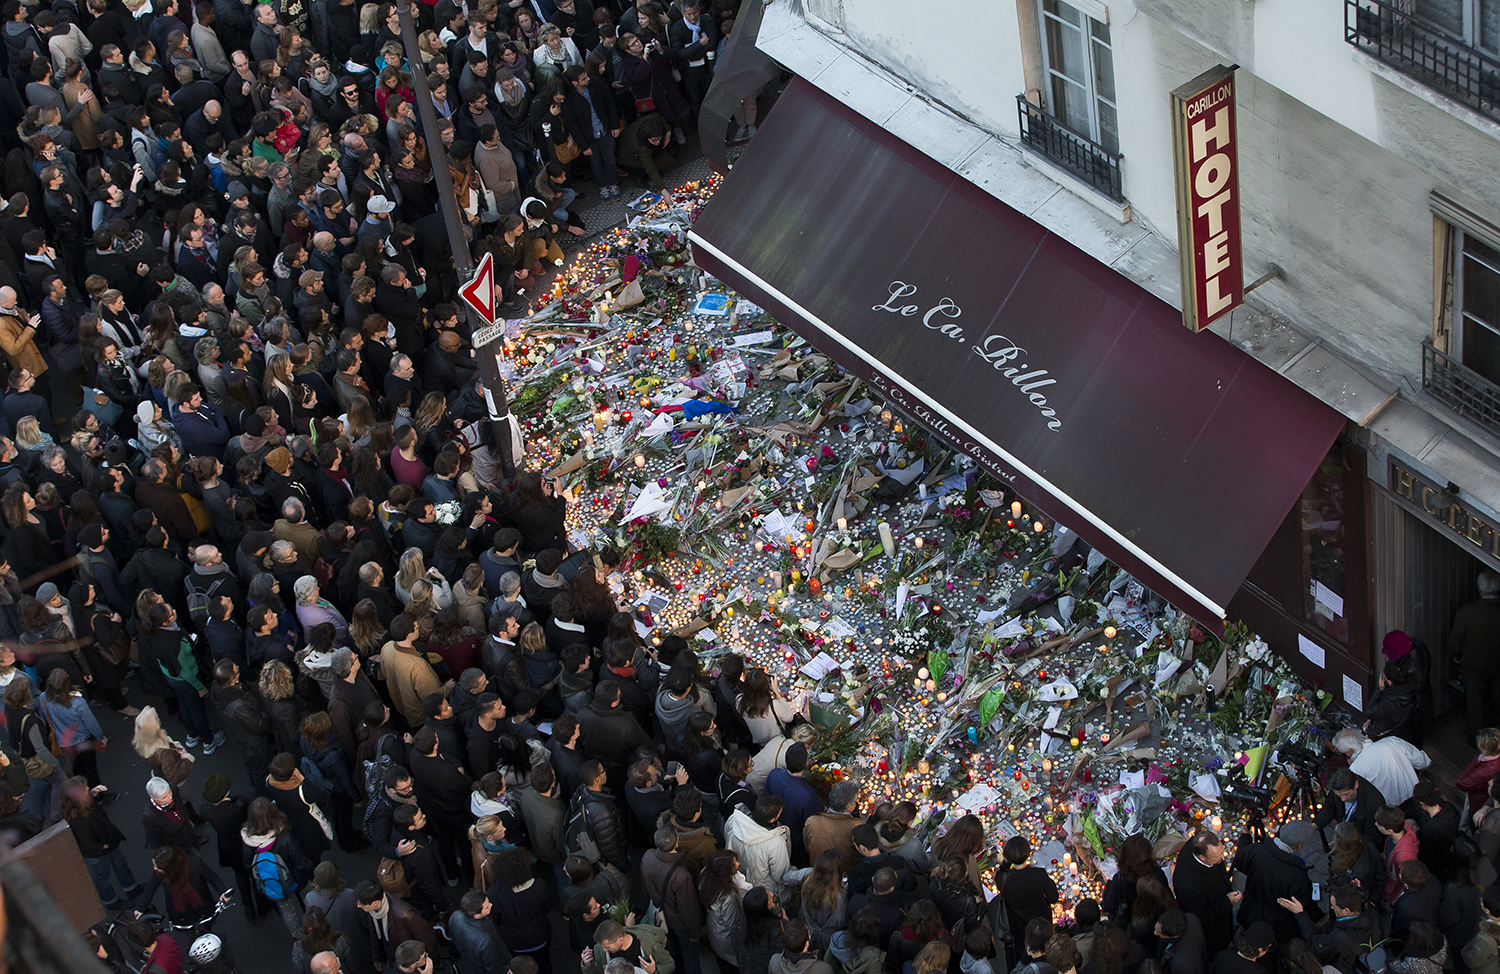 Attacks in Paris aftermath